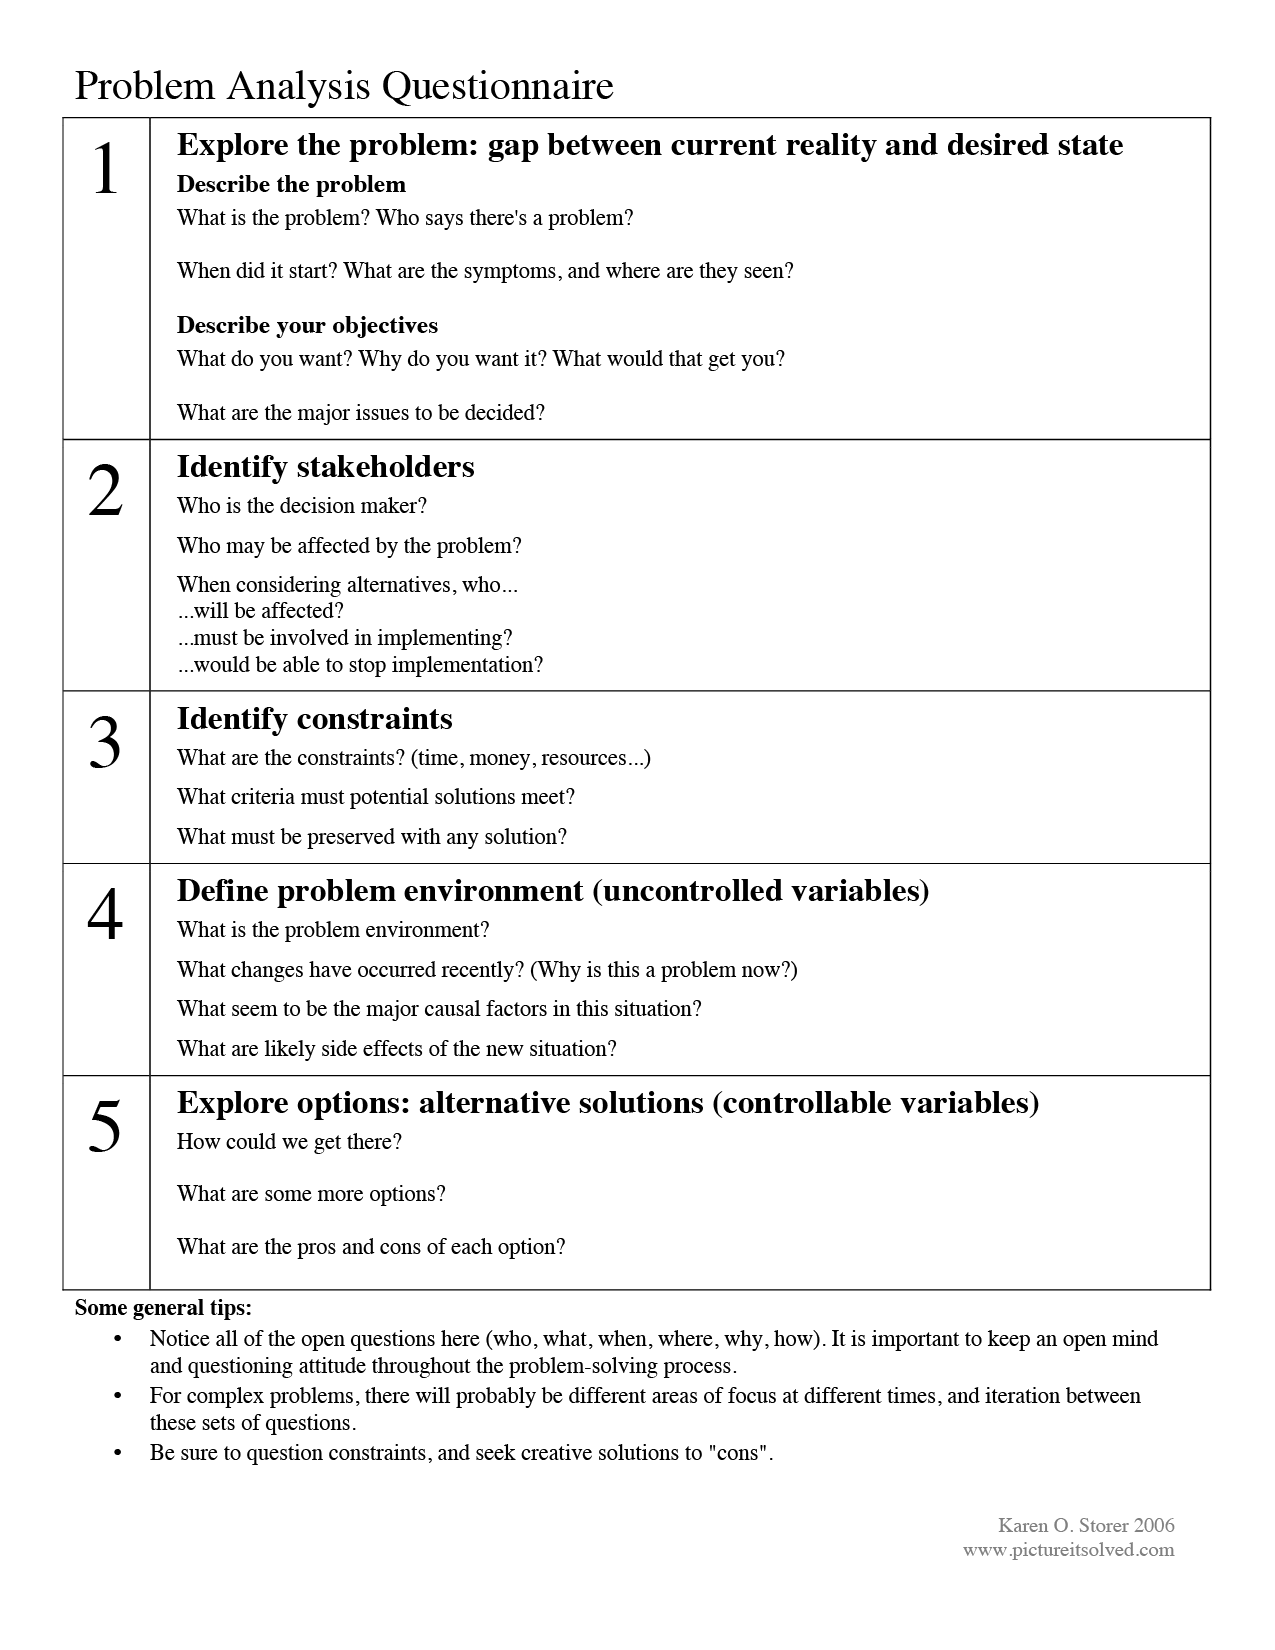 Printables Social Problem Solving Worksheets problem solving basics picture it solved analysis questionnaire